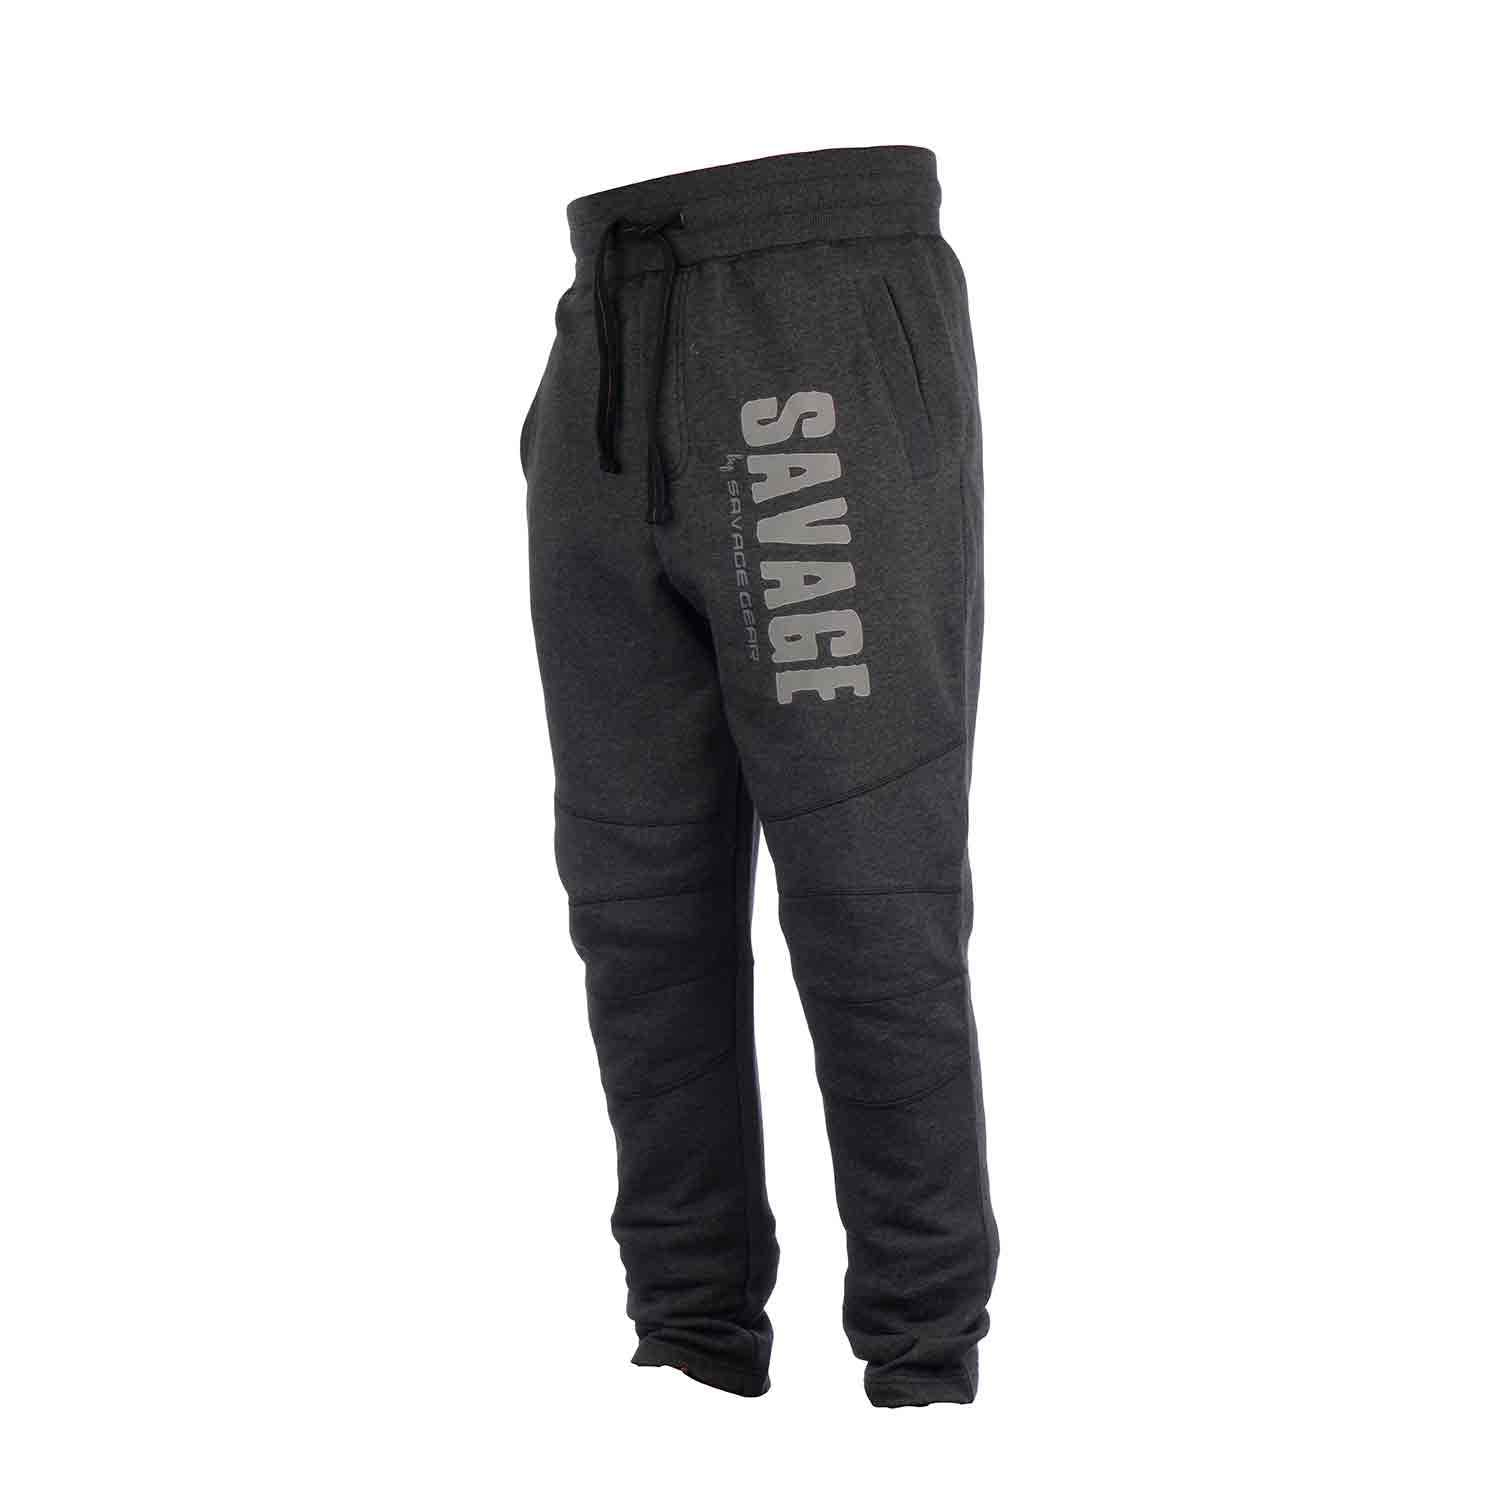 SG Simply Savage Joggers - reid outdoors